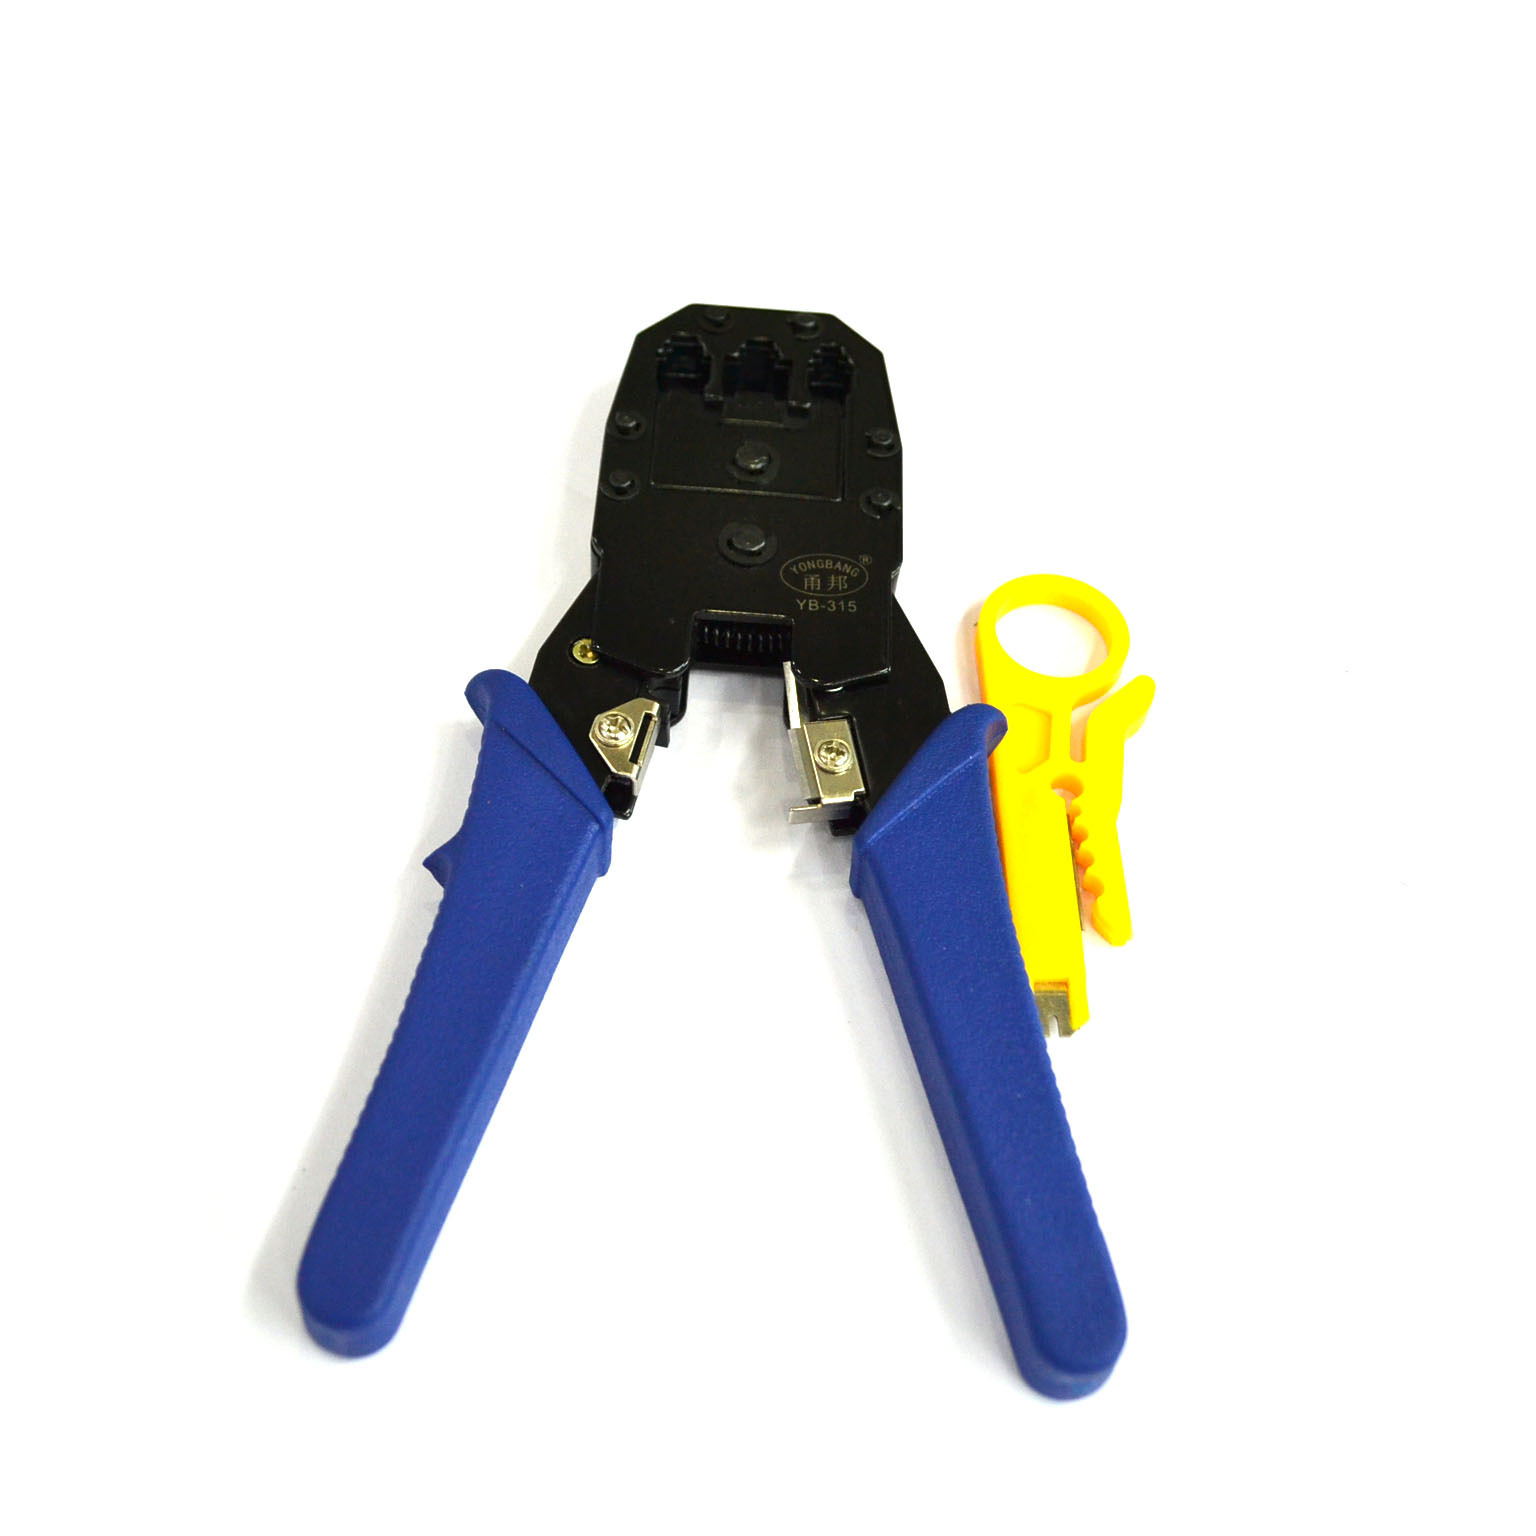 Con lăn   Bang Yong three crimping pliers with a net pliers multifunctional RJ45 network pliers str